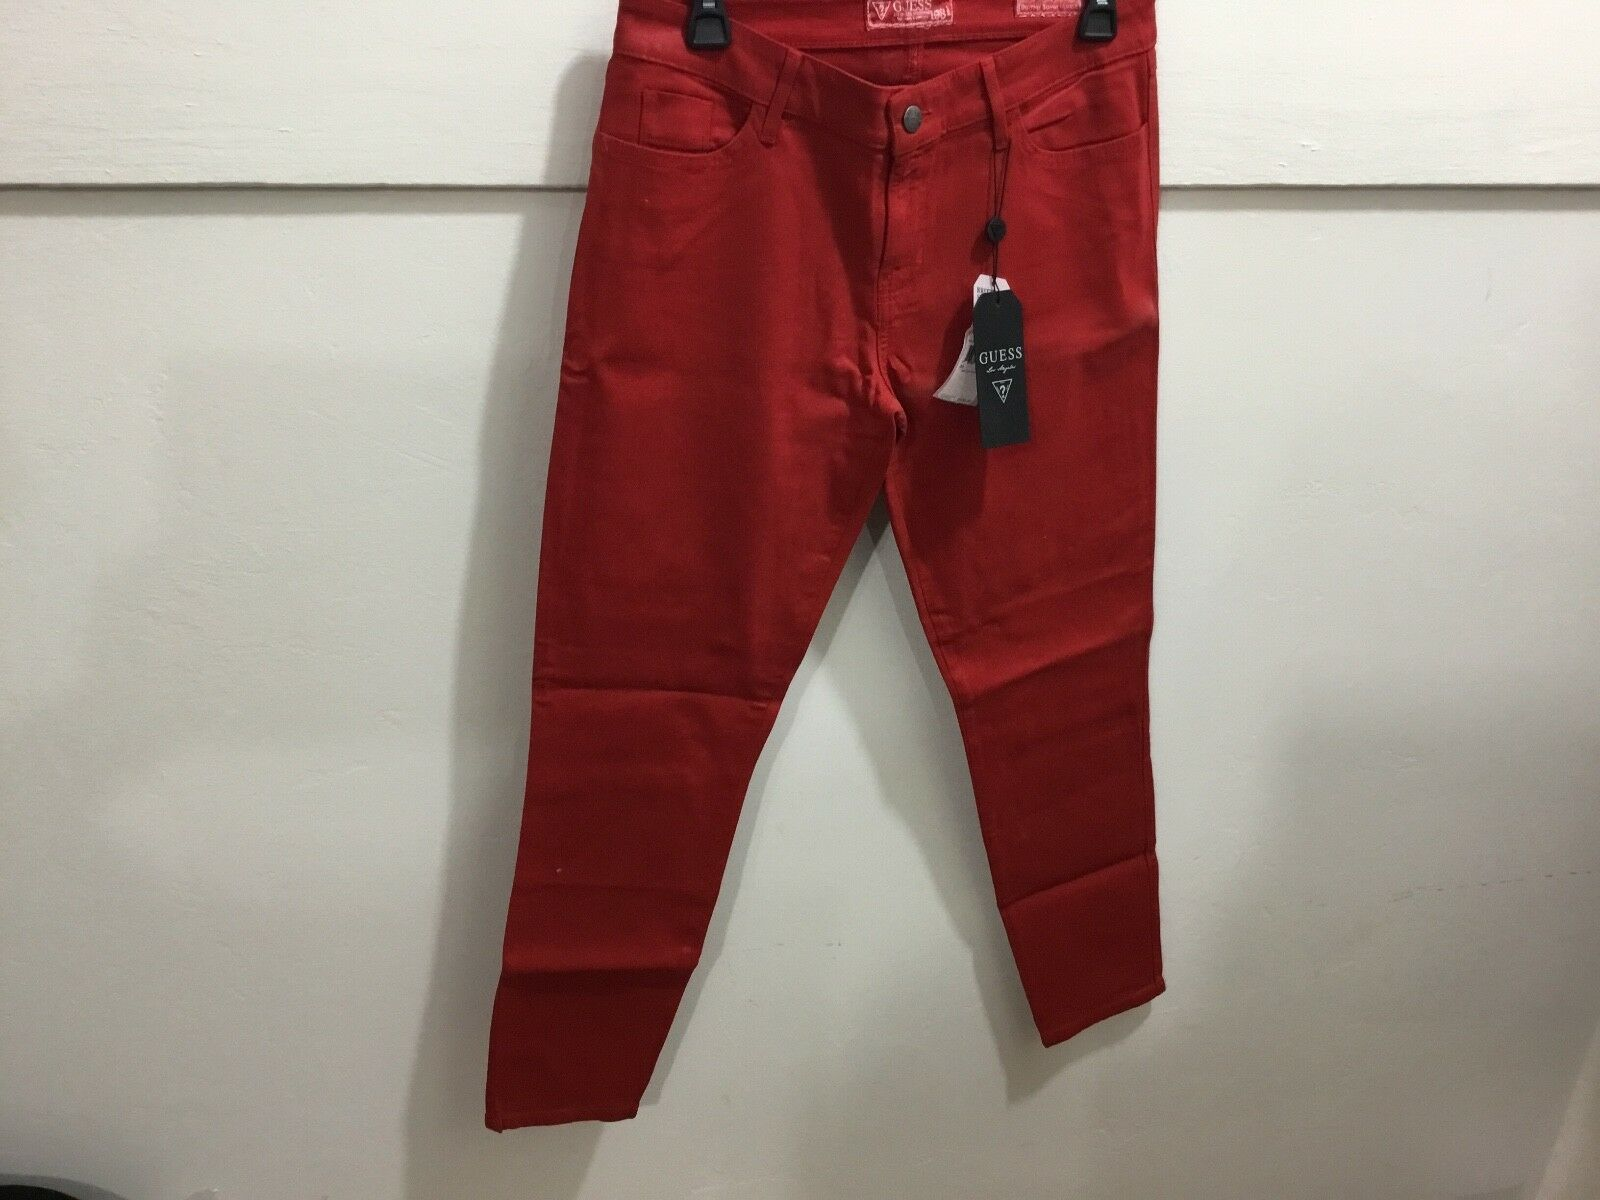 Guess ladies Brittney skinny ankle red NWT jeans